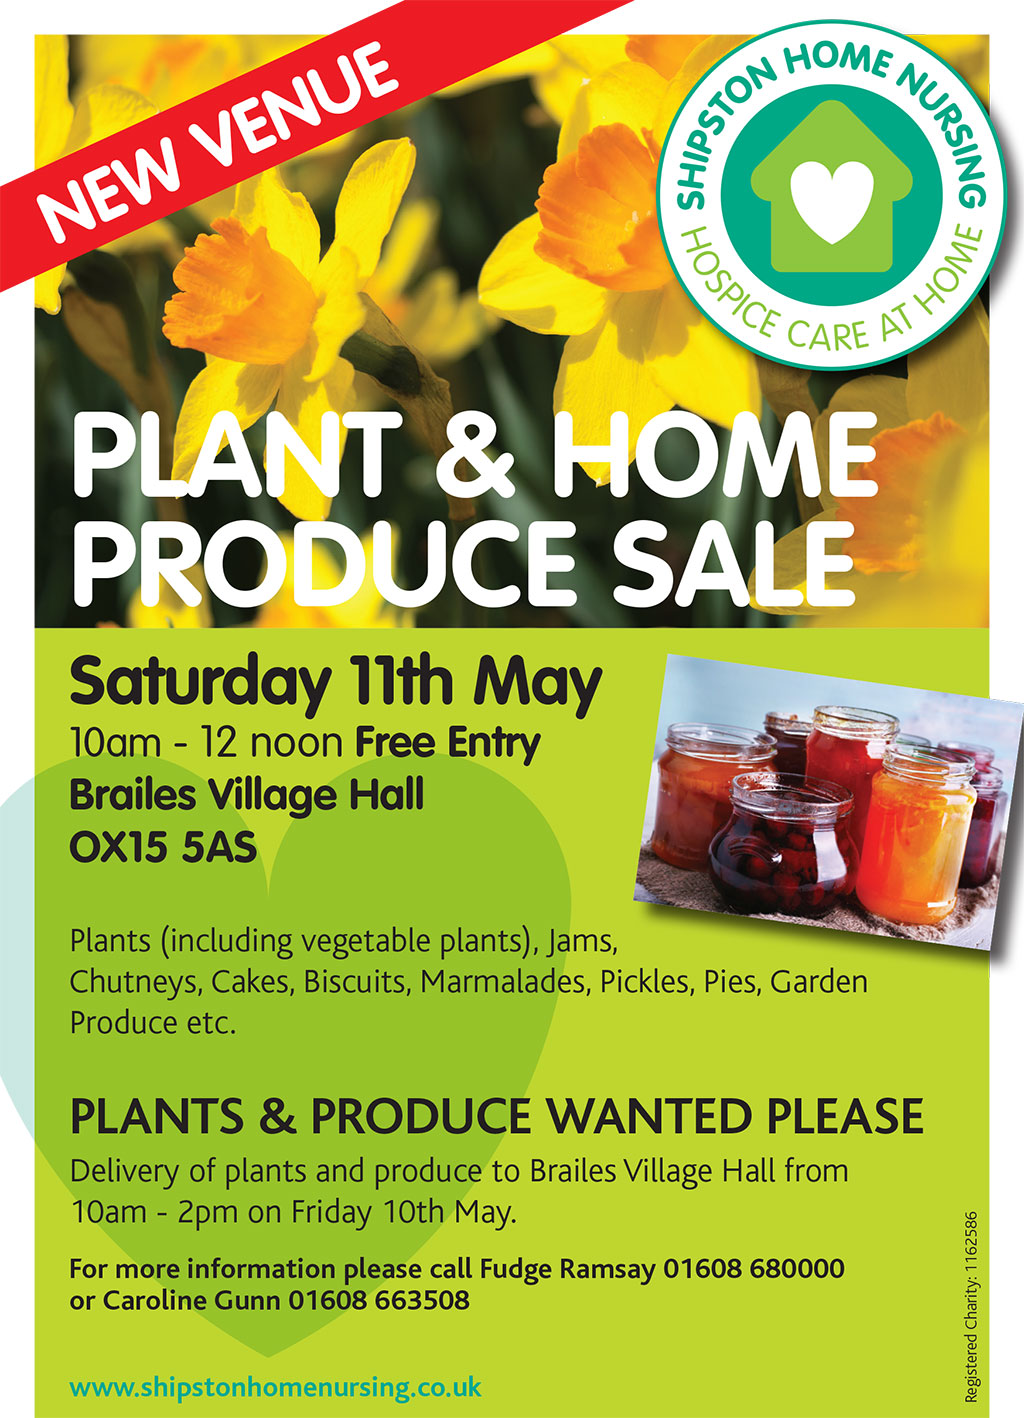 PLANT & HOME PRODUCE SALE – NEW VENUE